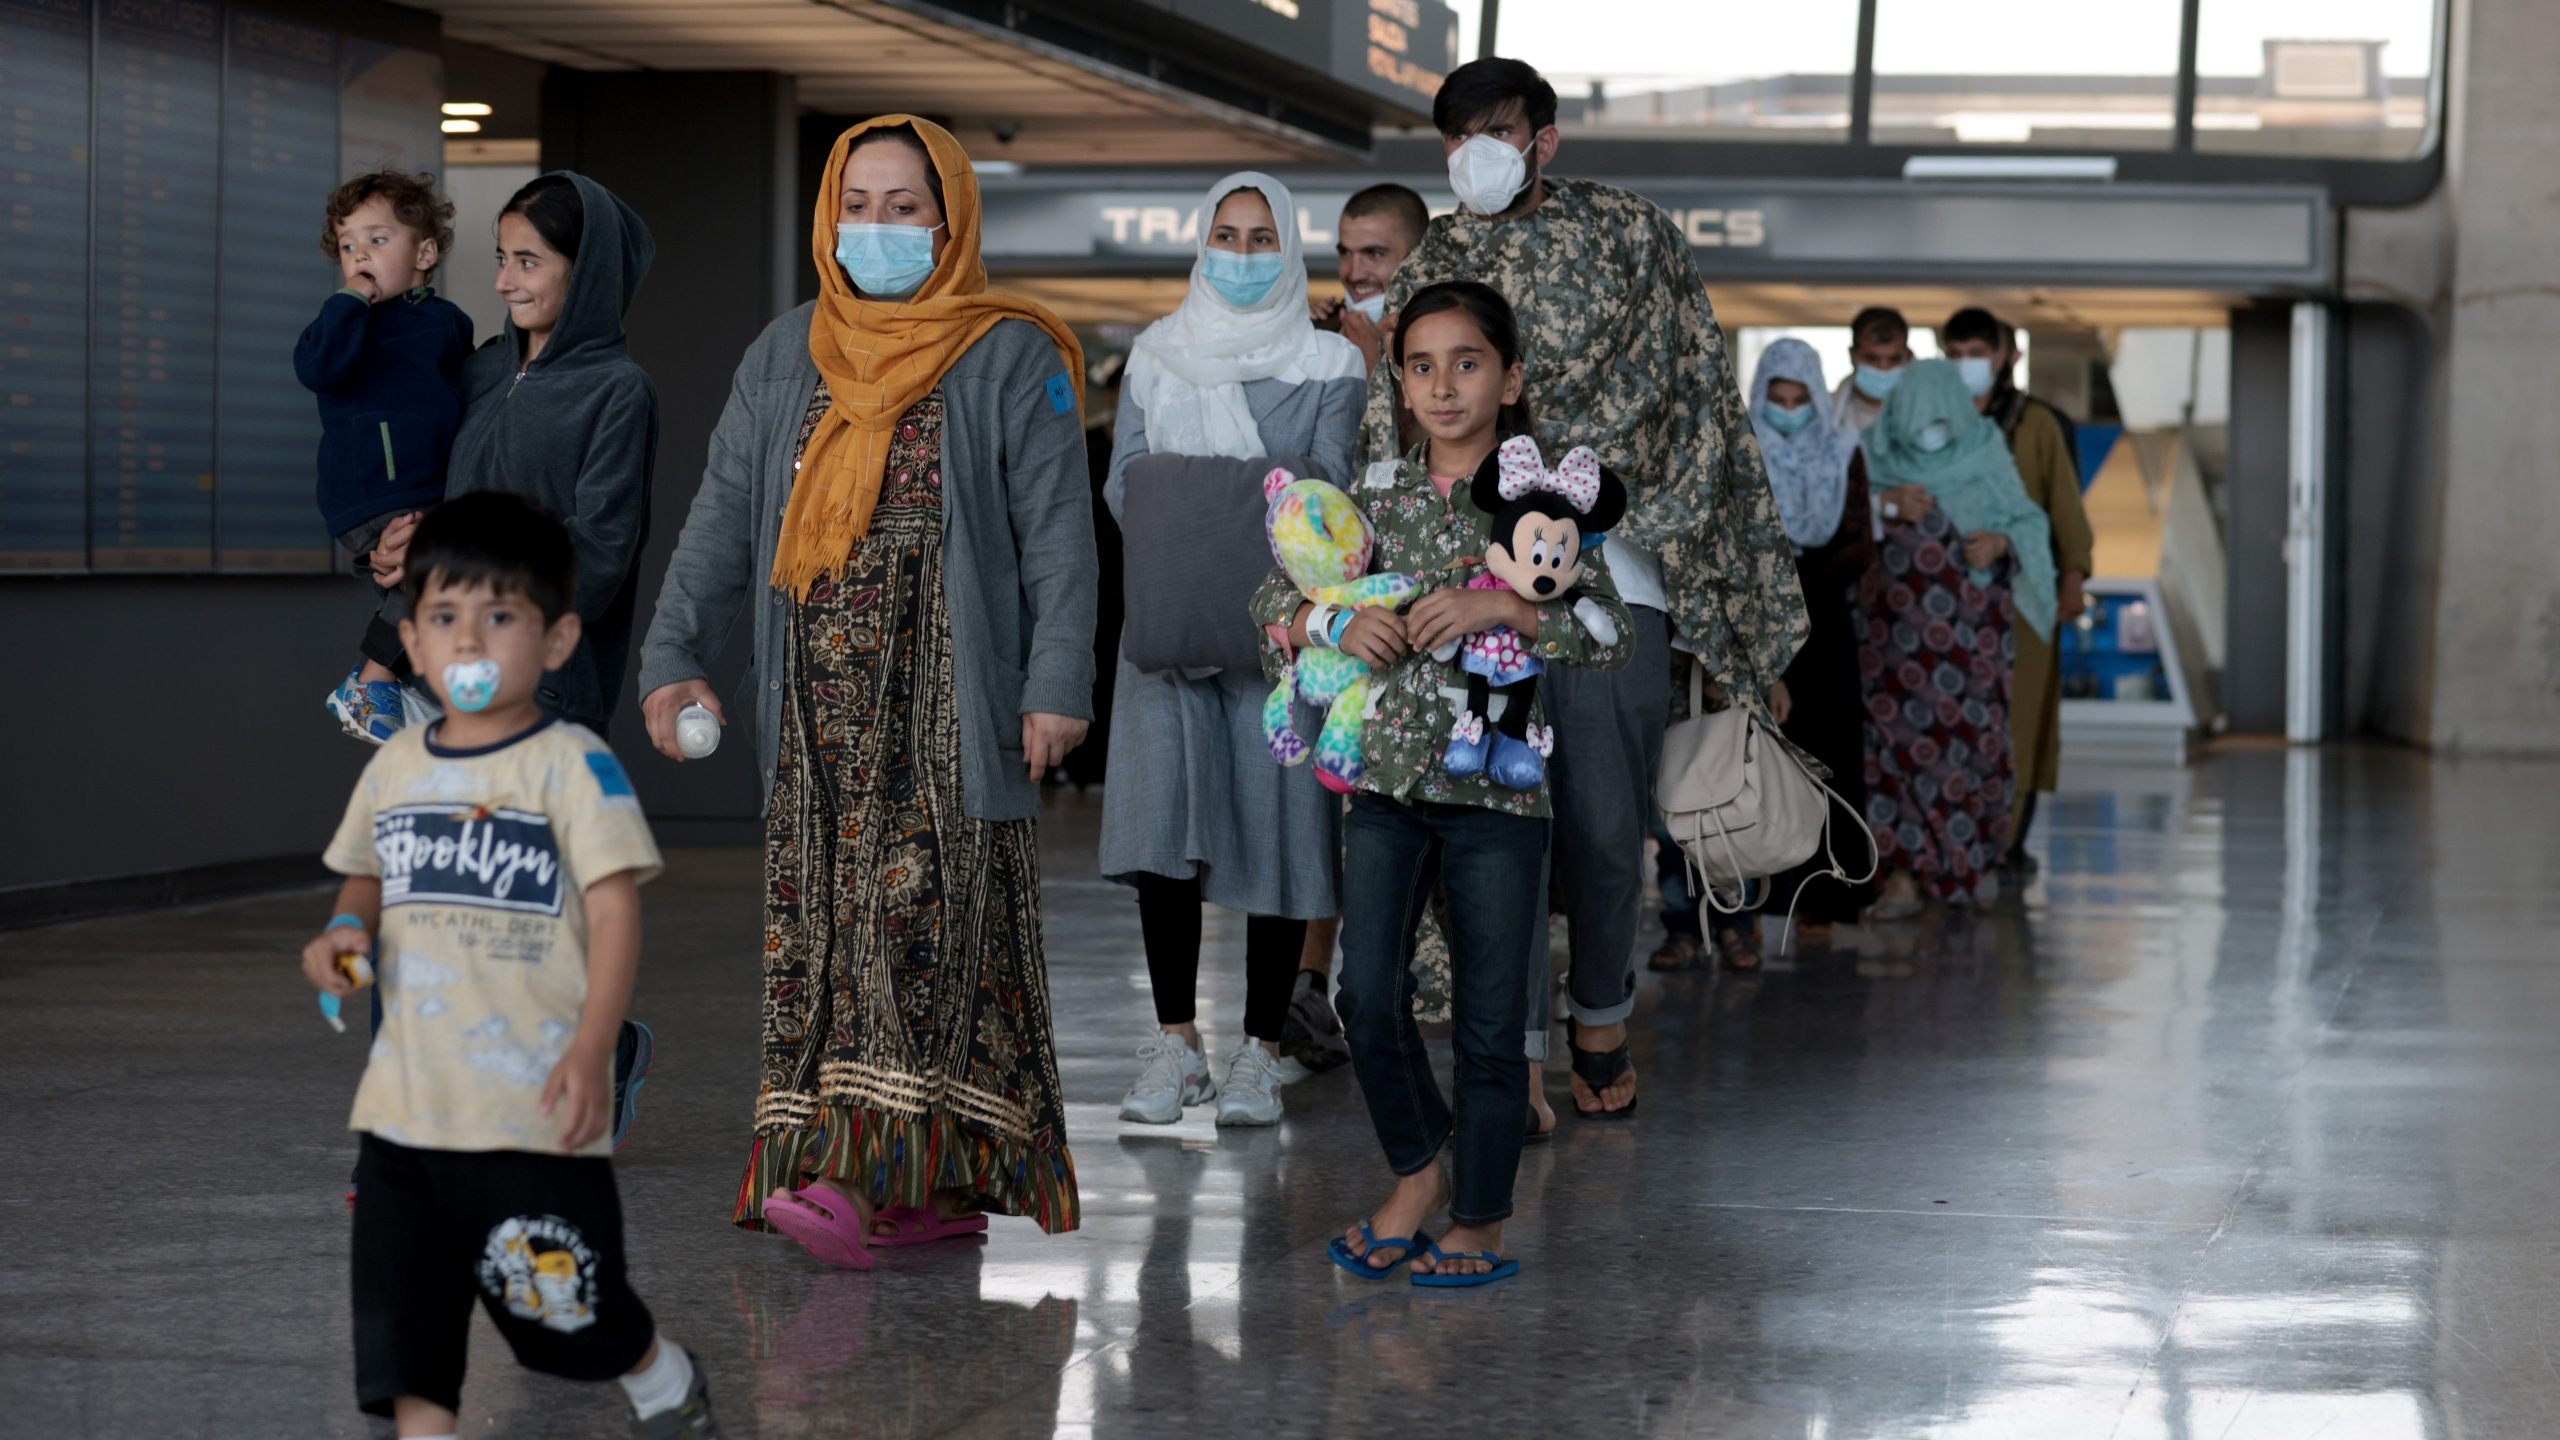 A family evacuated from Afghanistan is led through the arrival terminal at the Dulles International Airport to board a bus that will take them to a refugee processing center on Aug. 25, 2021 in Dulles, Virginia. (Anna Moneymaker/Getty Images)